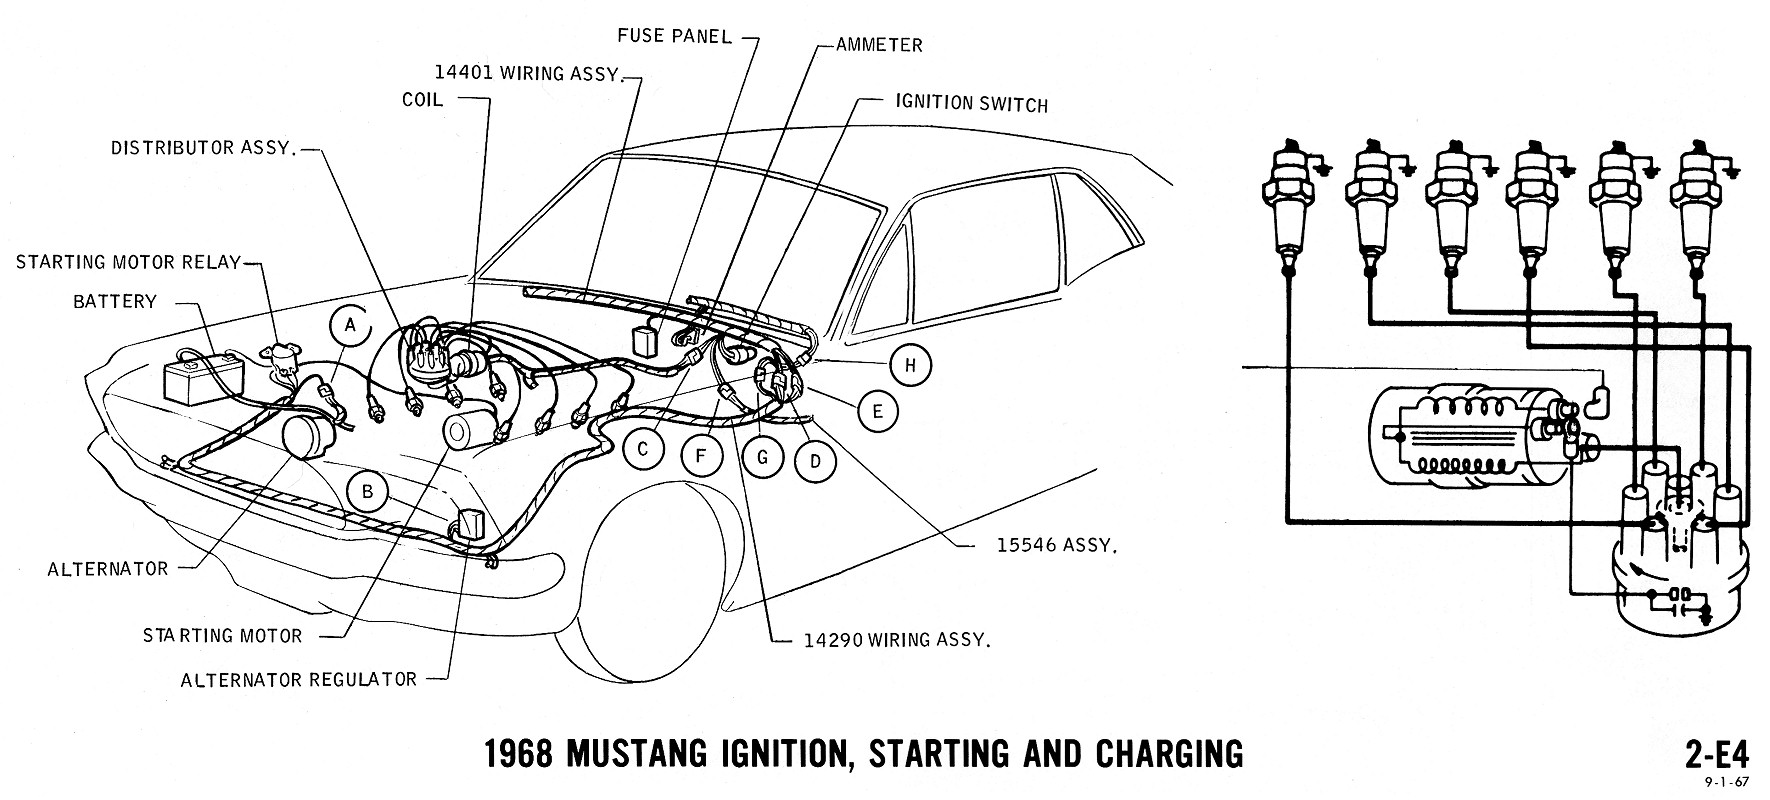 1968 Mustang Wiring Diagram Vacuum Schematics on 1965 mustang radio wiring diagram